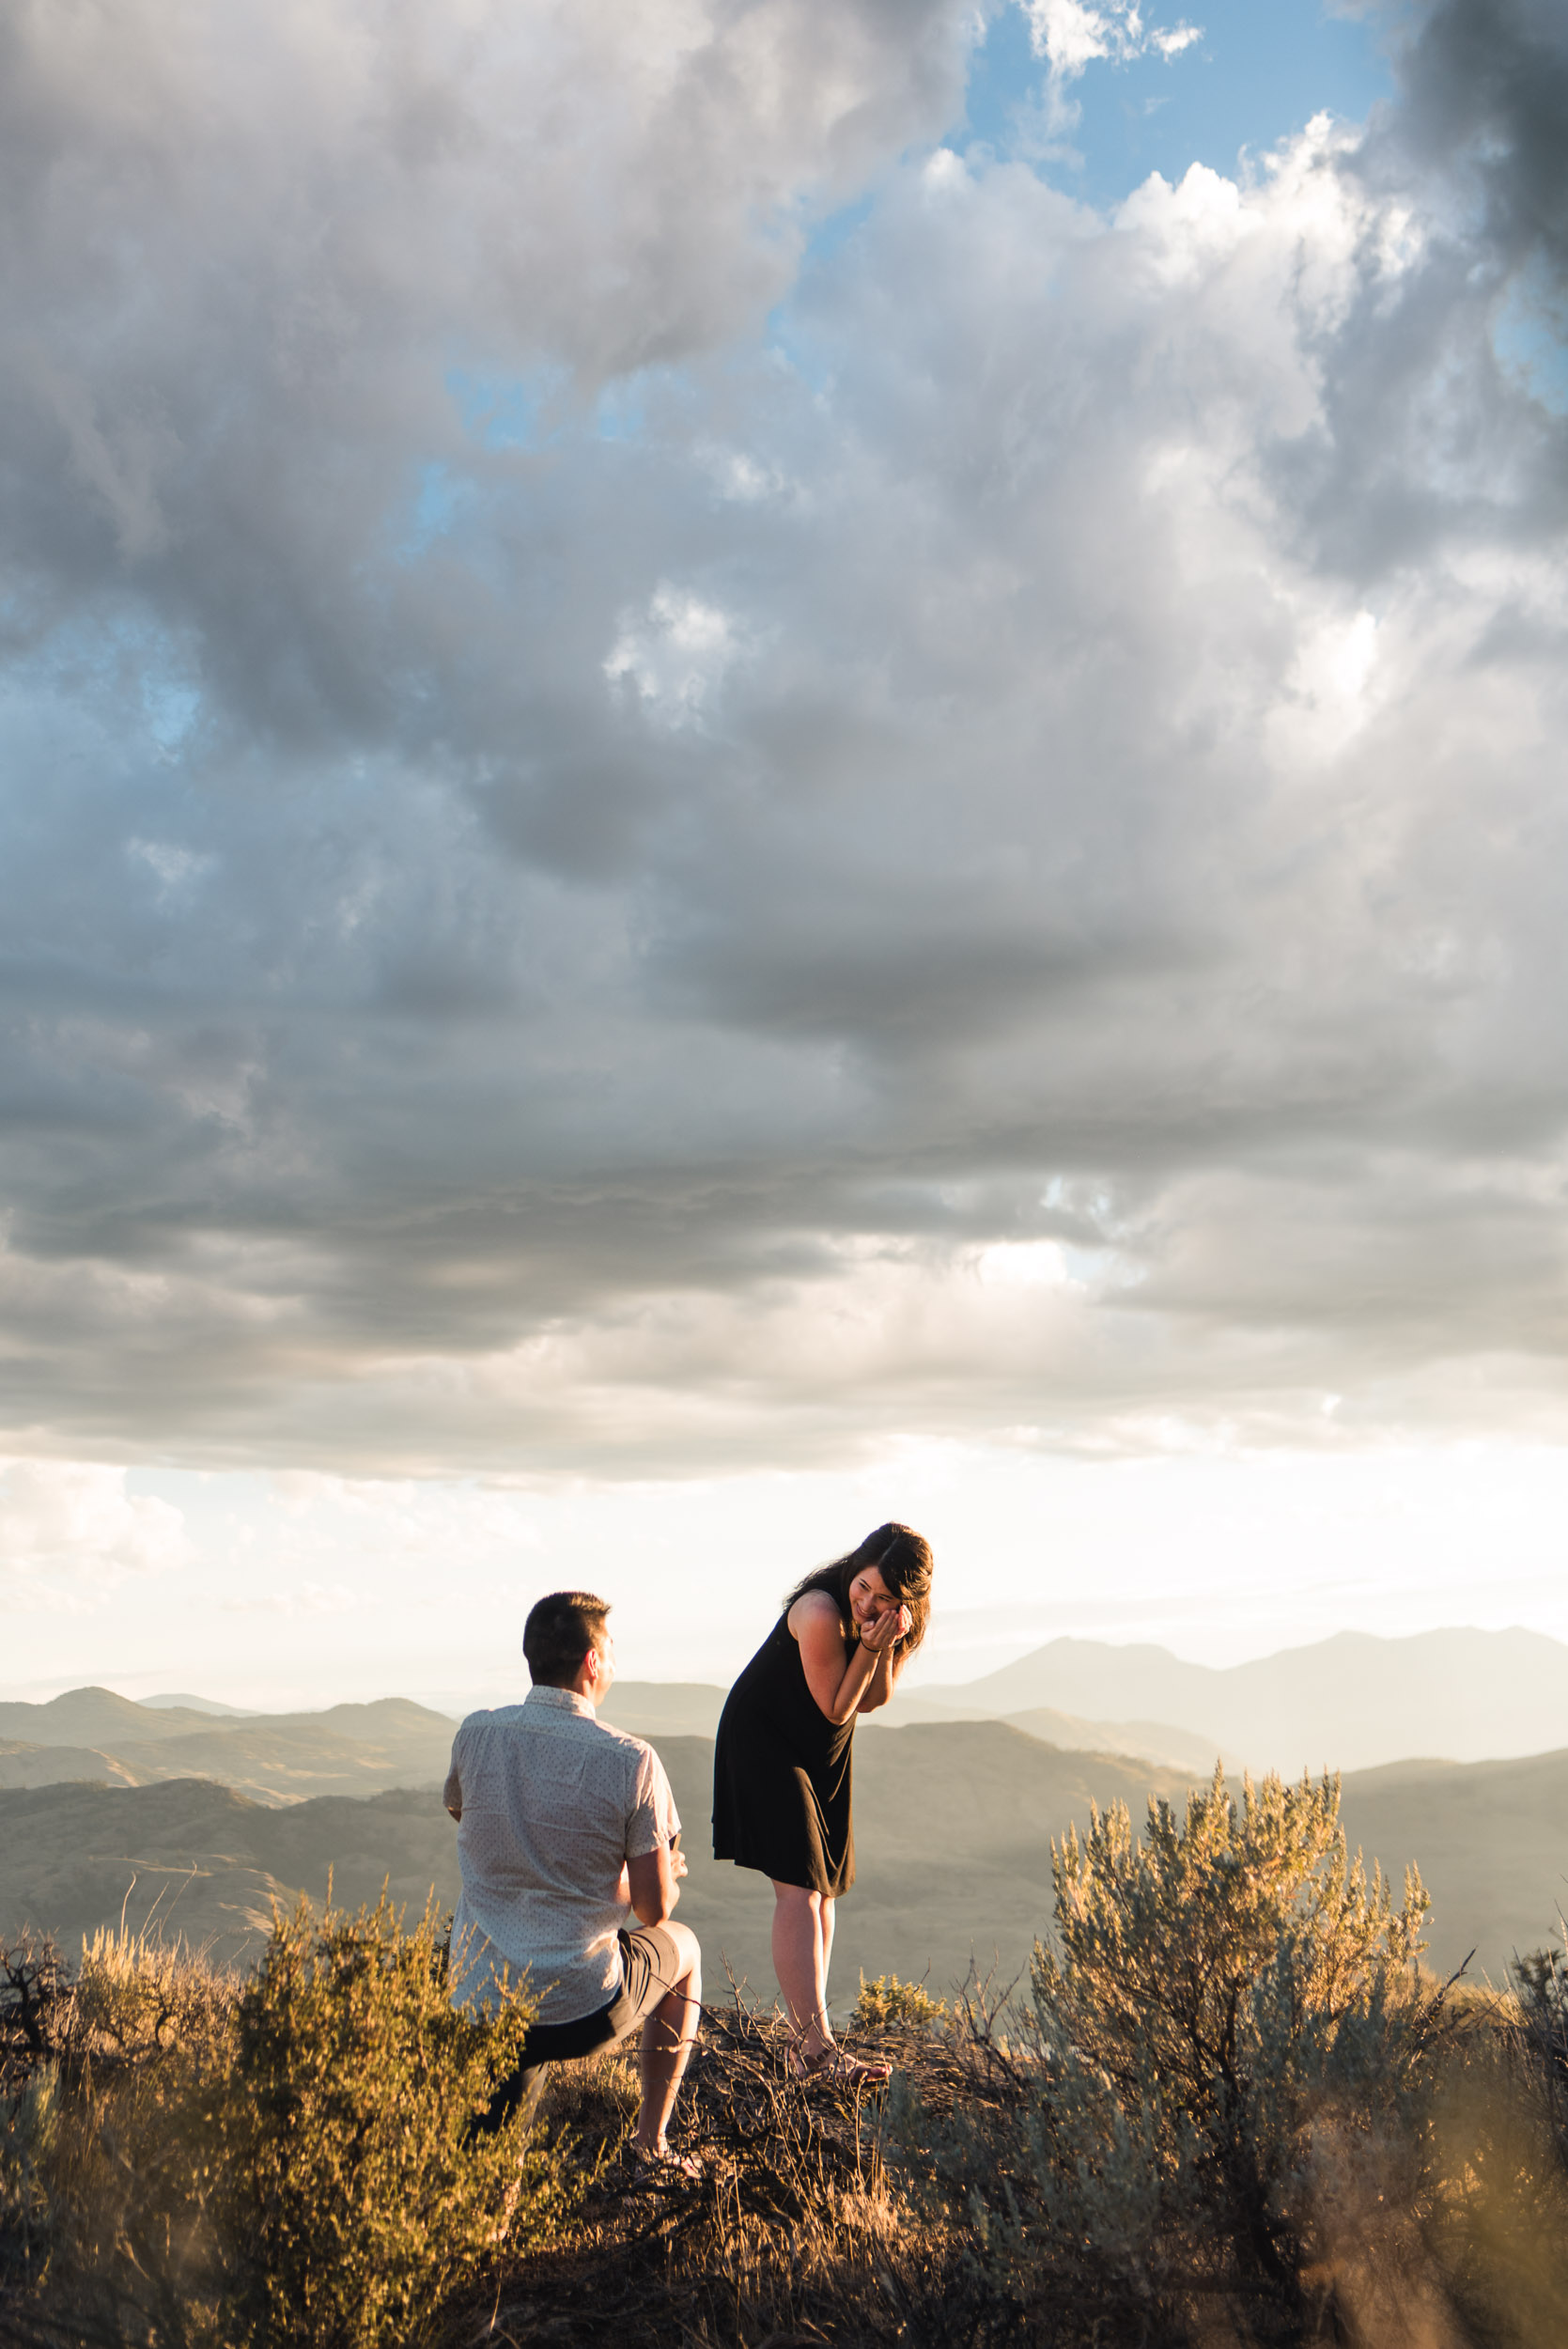 LukeMiklerPhoto_Engagements-13.jpg